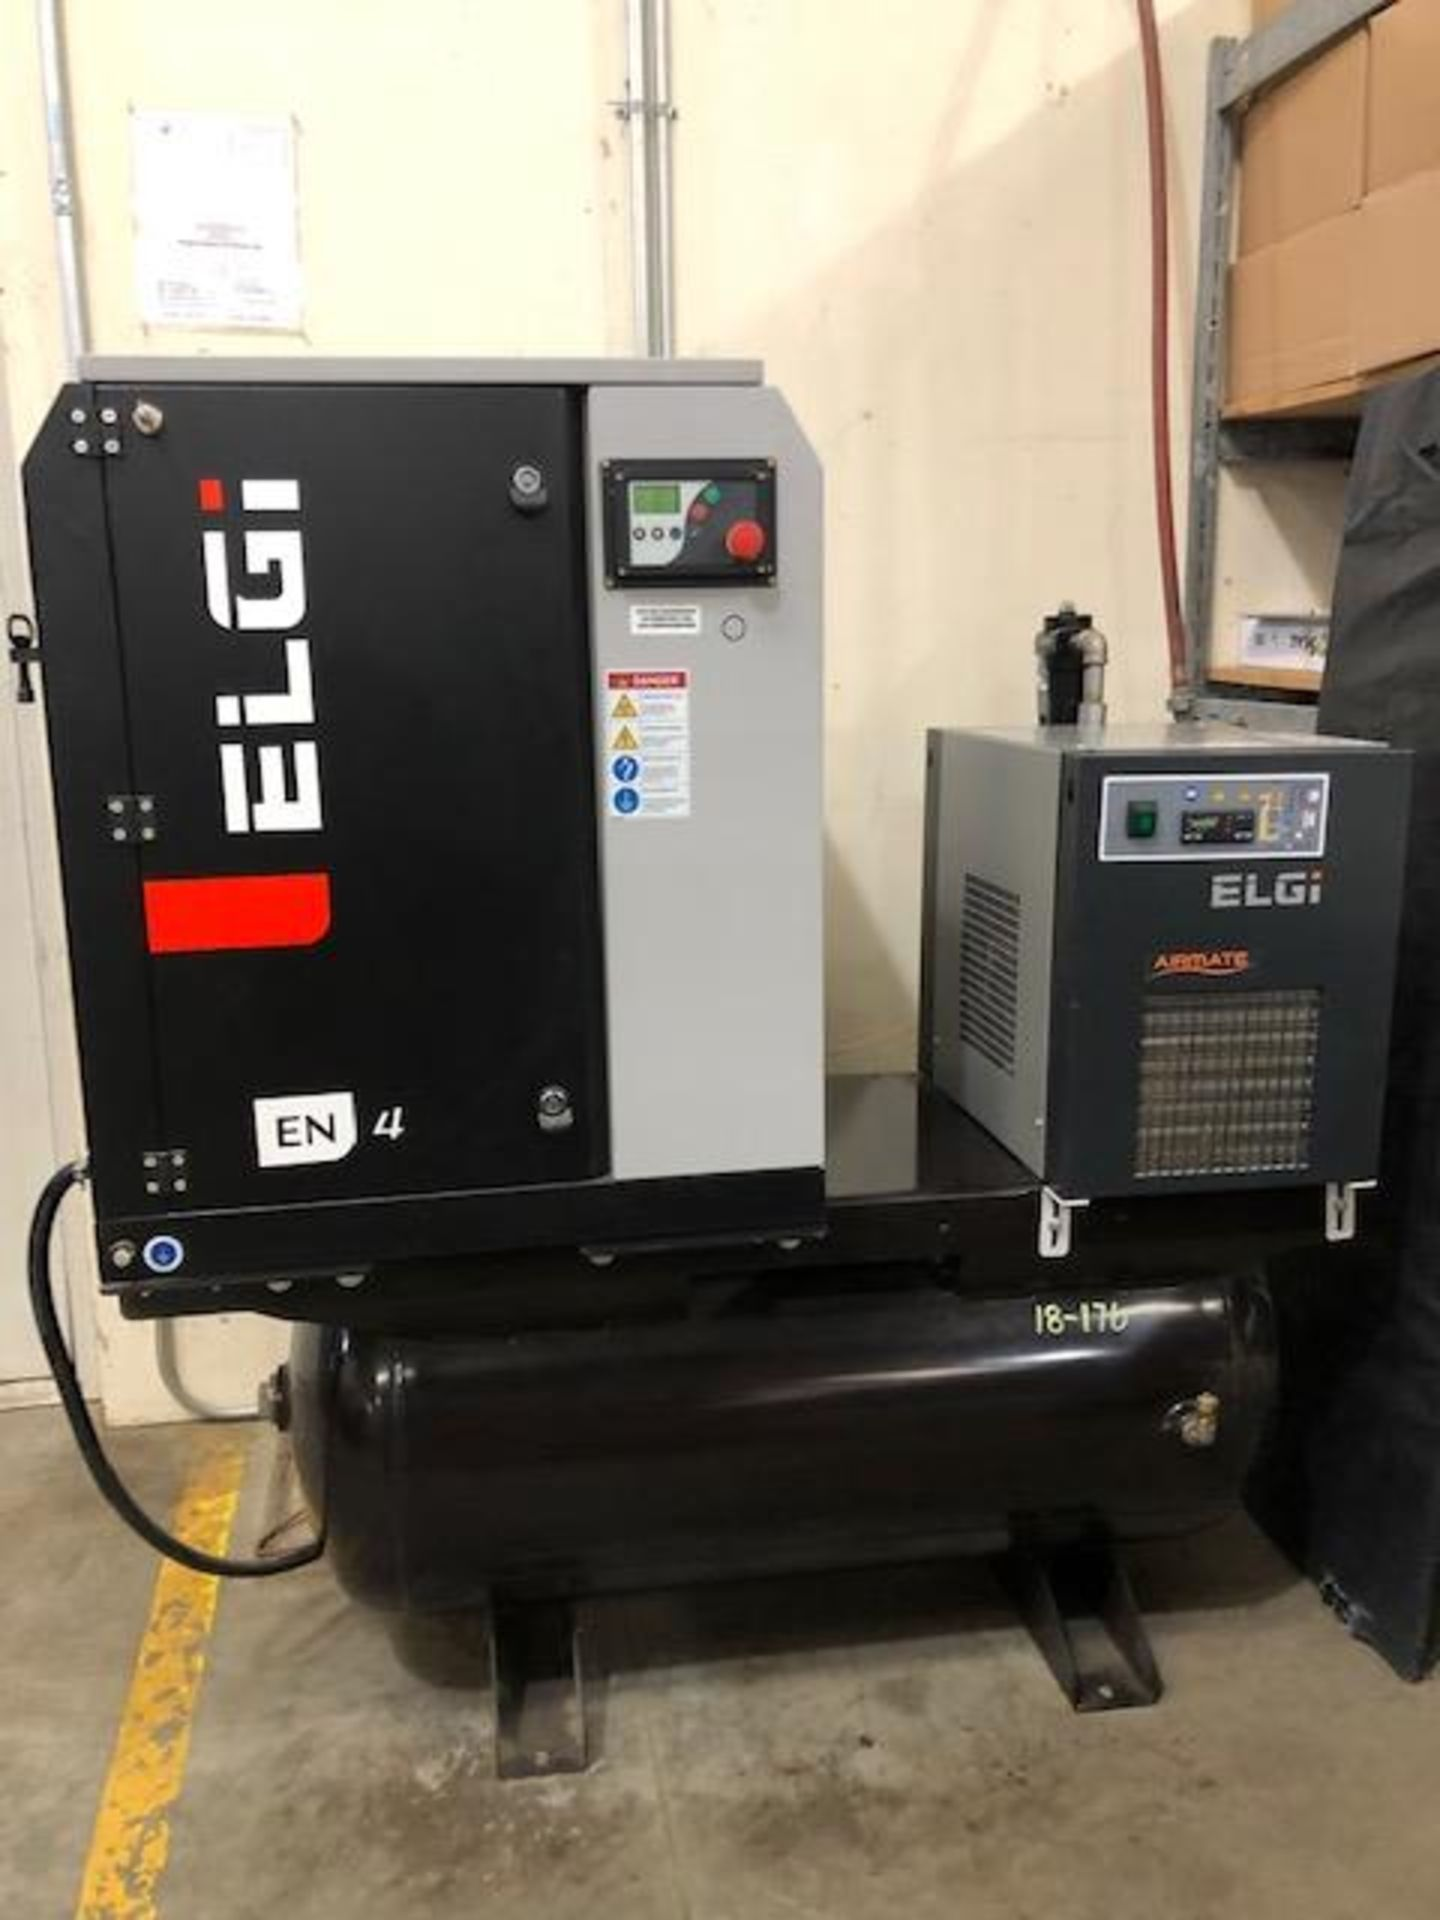 Used-Green Vault Systems Precision Batcher for Batching & Packaging Flower w/ Air Compressor - Image 9 of 23